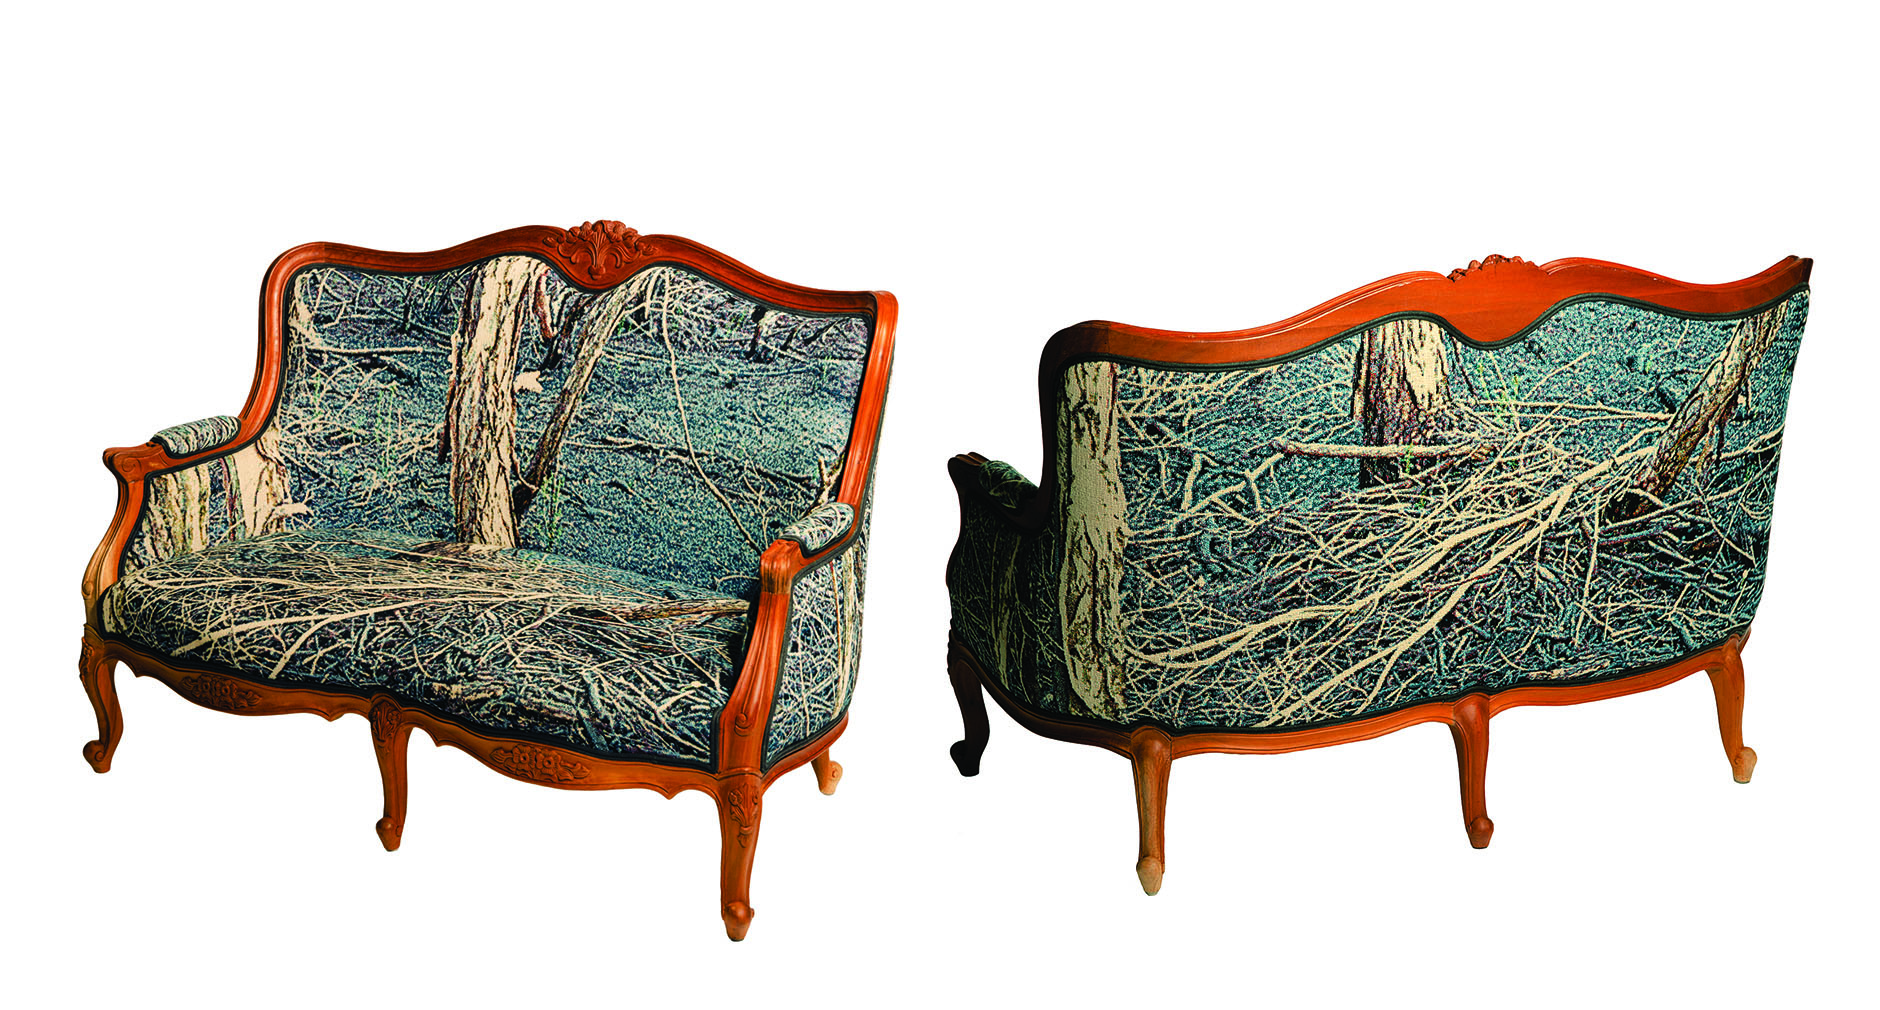 Deb Mansfield, The Armchair Traveller (two-seater), 2013, photo-tapestry upholstered into a reproduction Louis two-seater frame, 93 x 130 x 70 cm